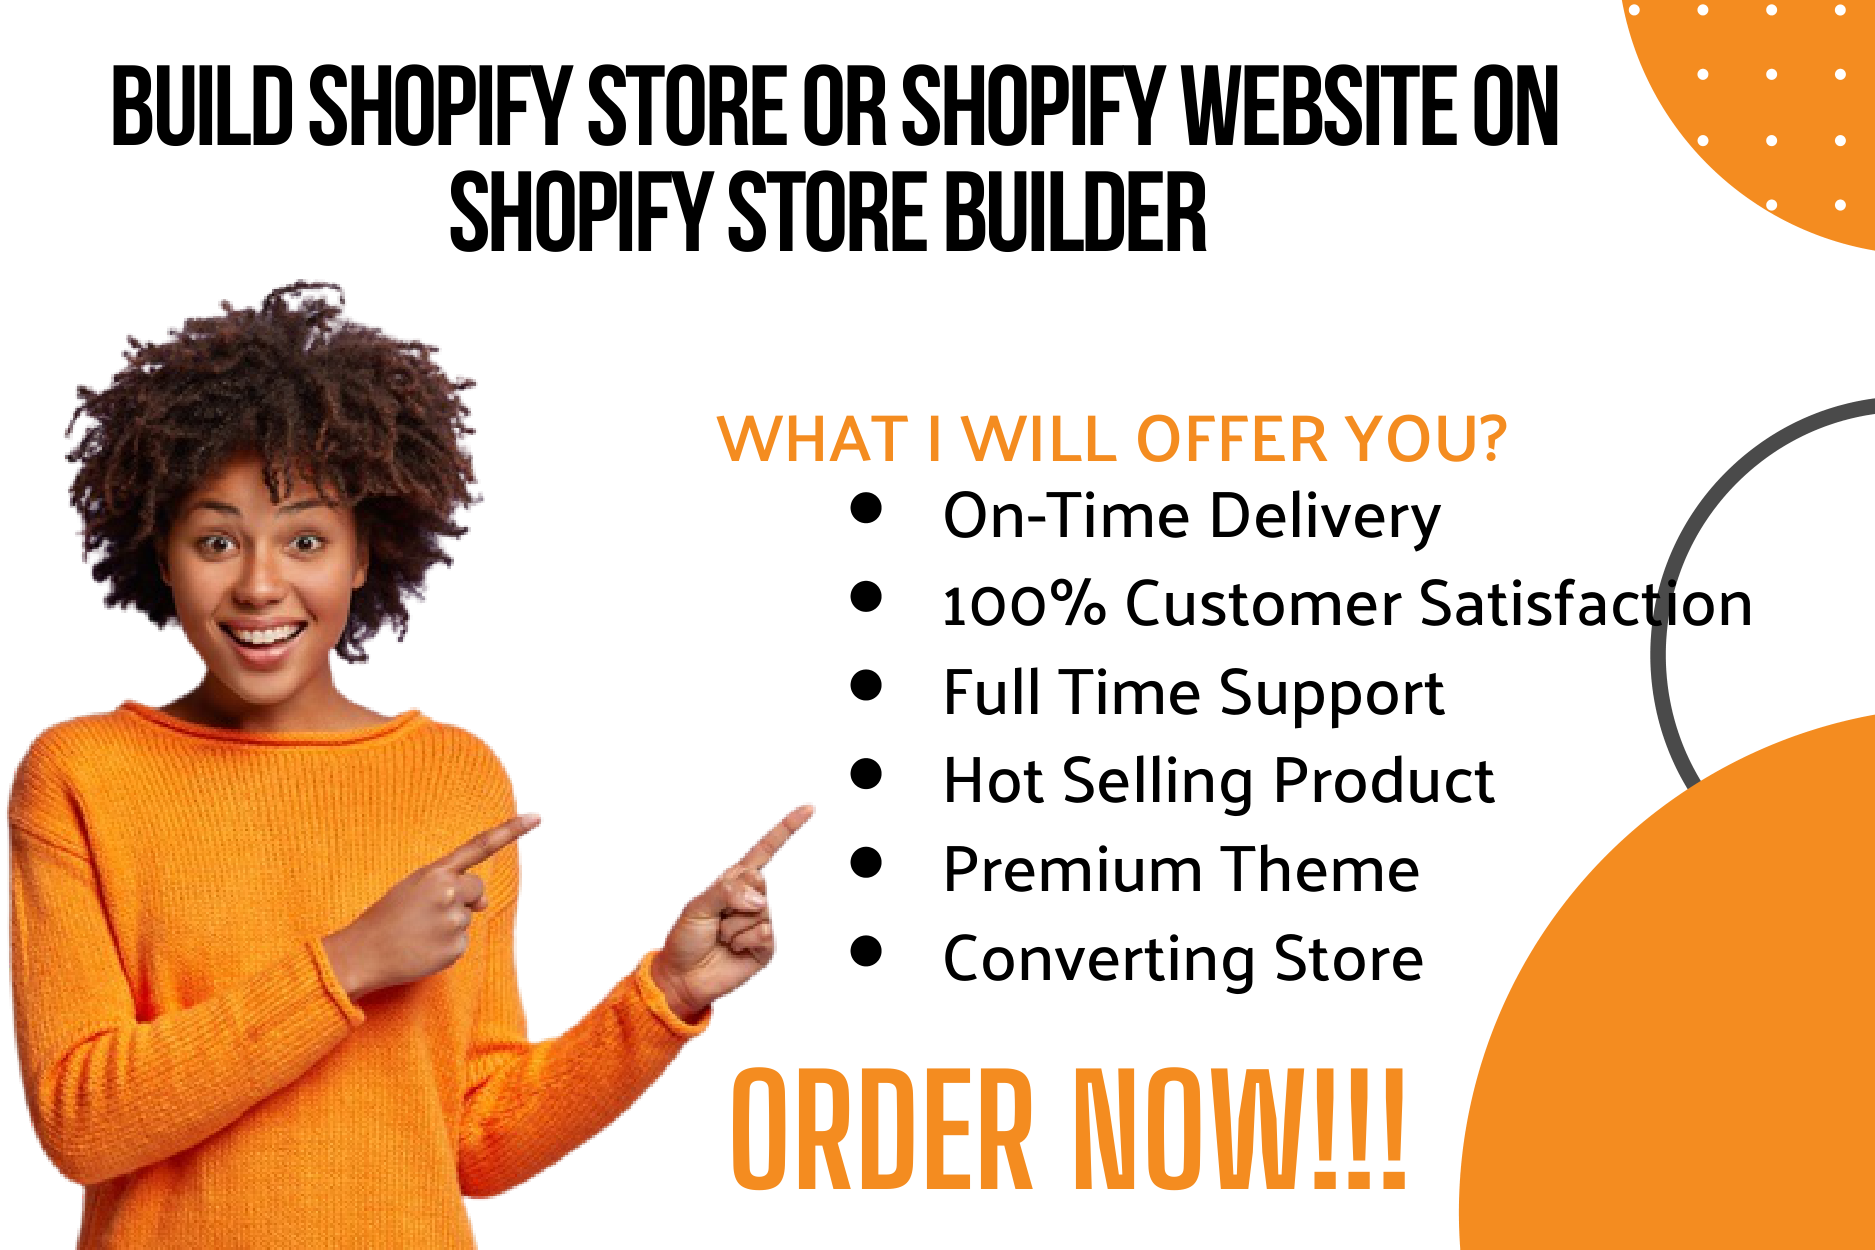 I will build shopify store or shopify website on shopify store, FiverrBox